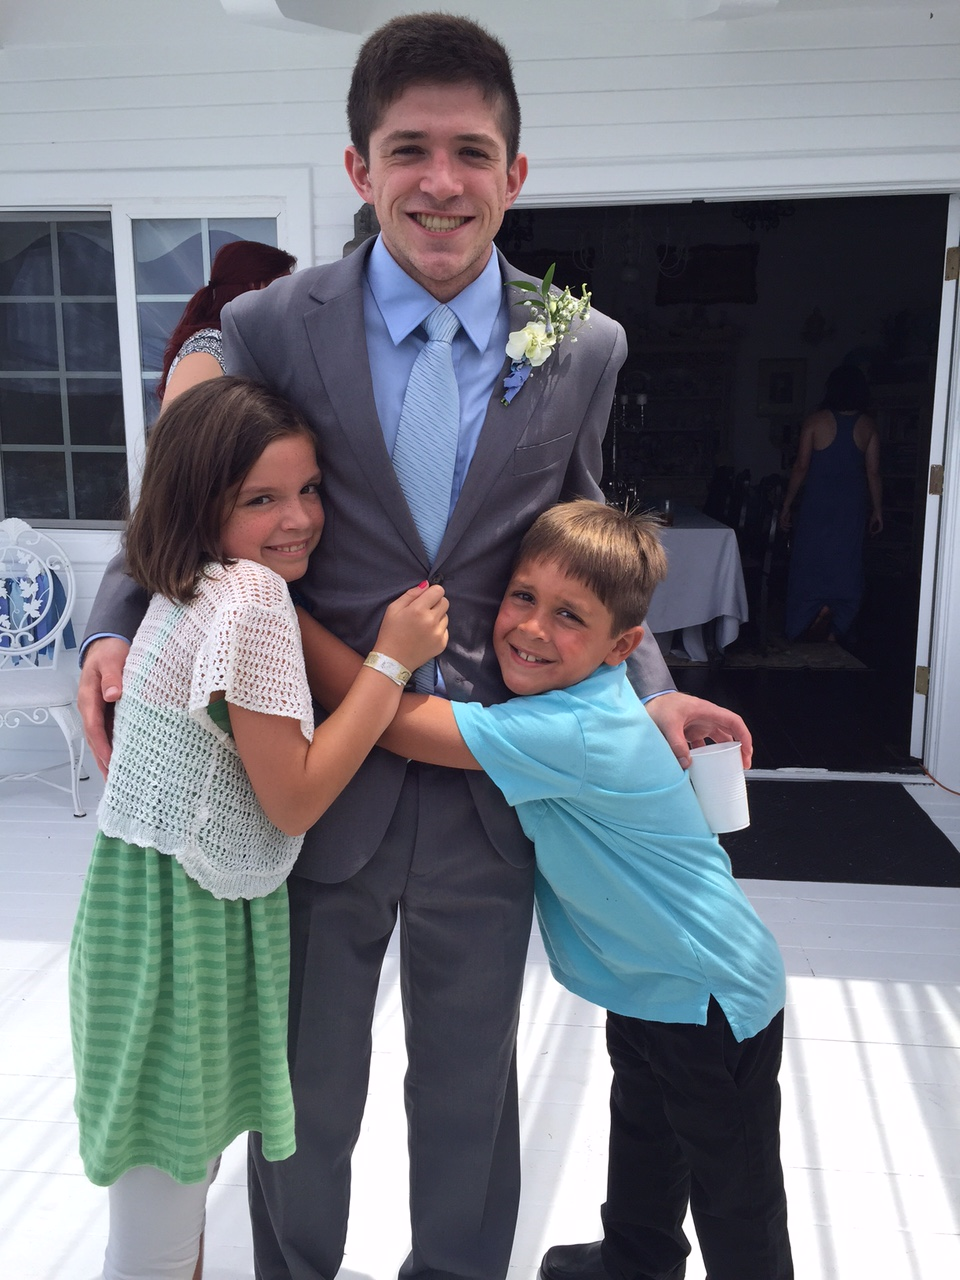 My nephew Steven at the wedding of his brother, Andrew. As you can see, our daughter CJ loves her cousin!